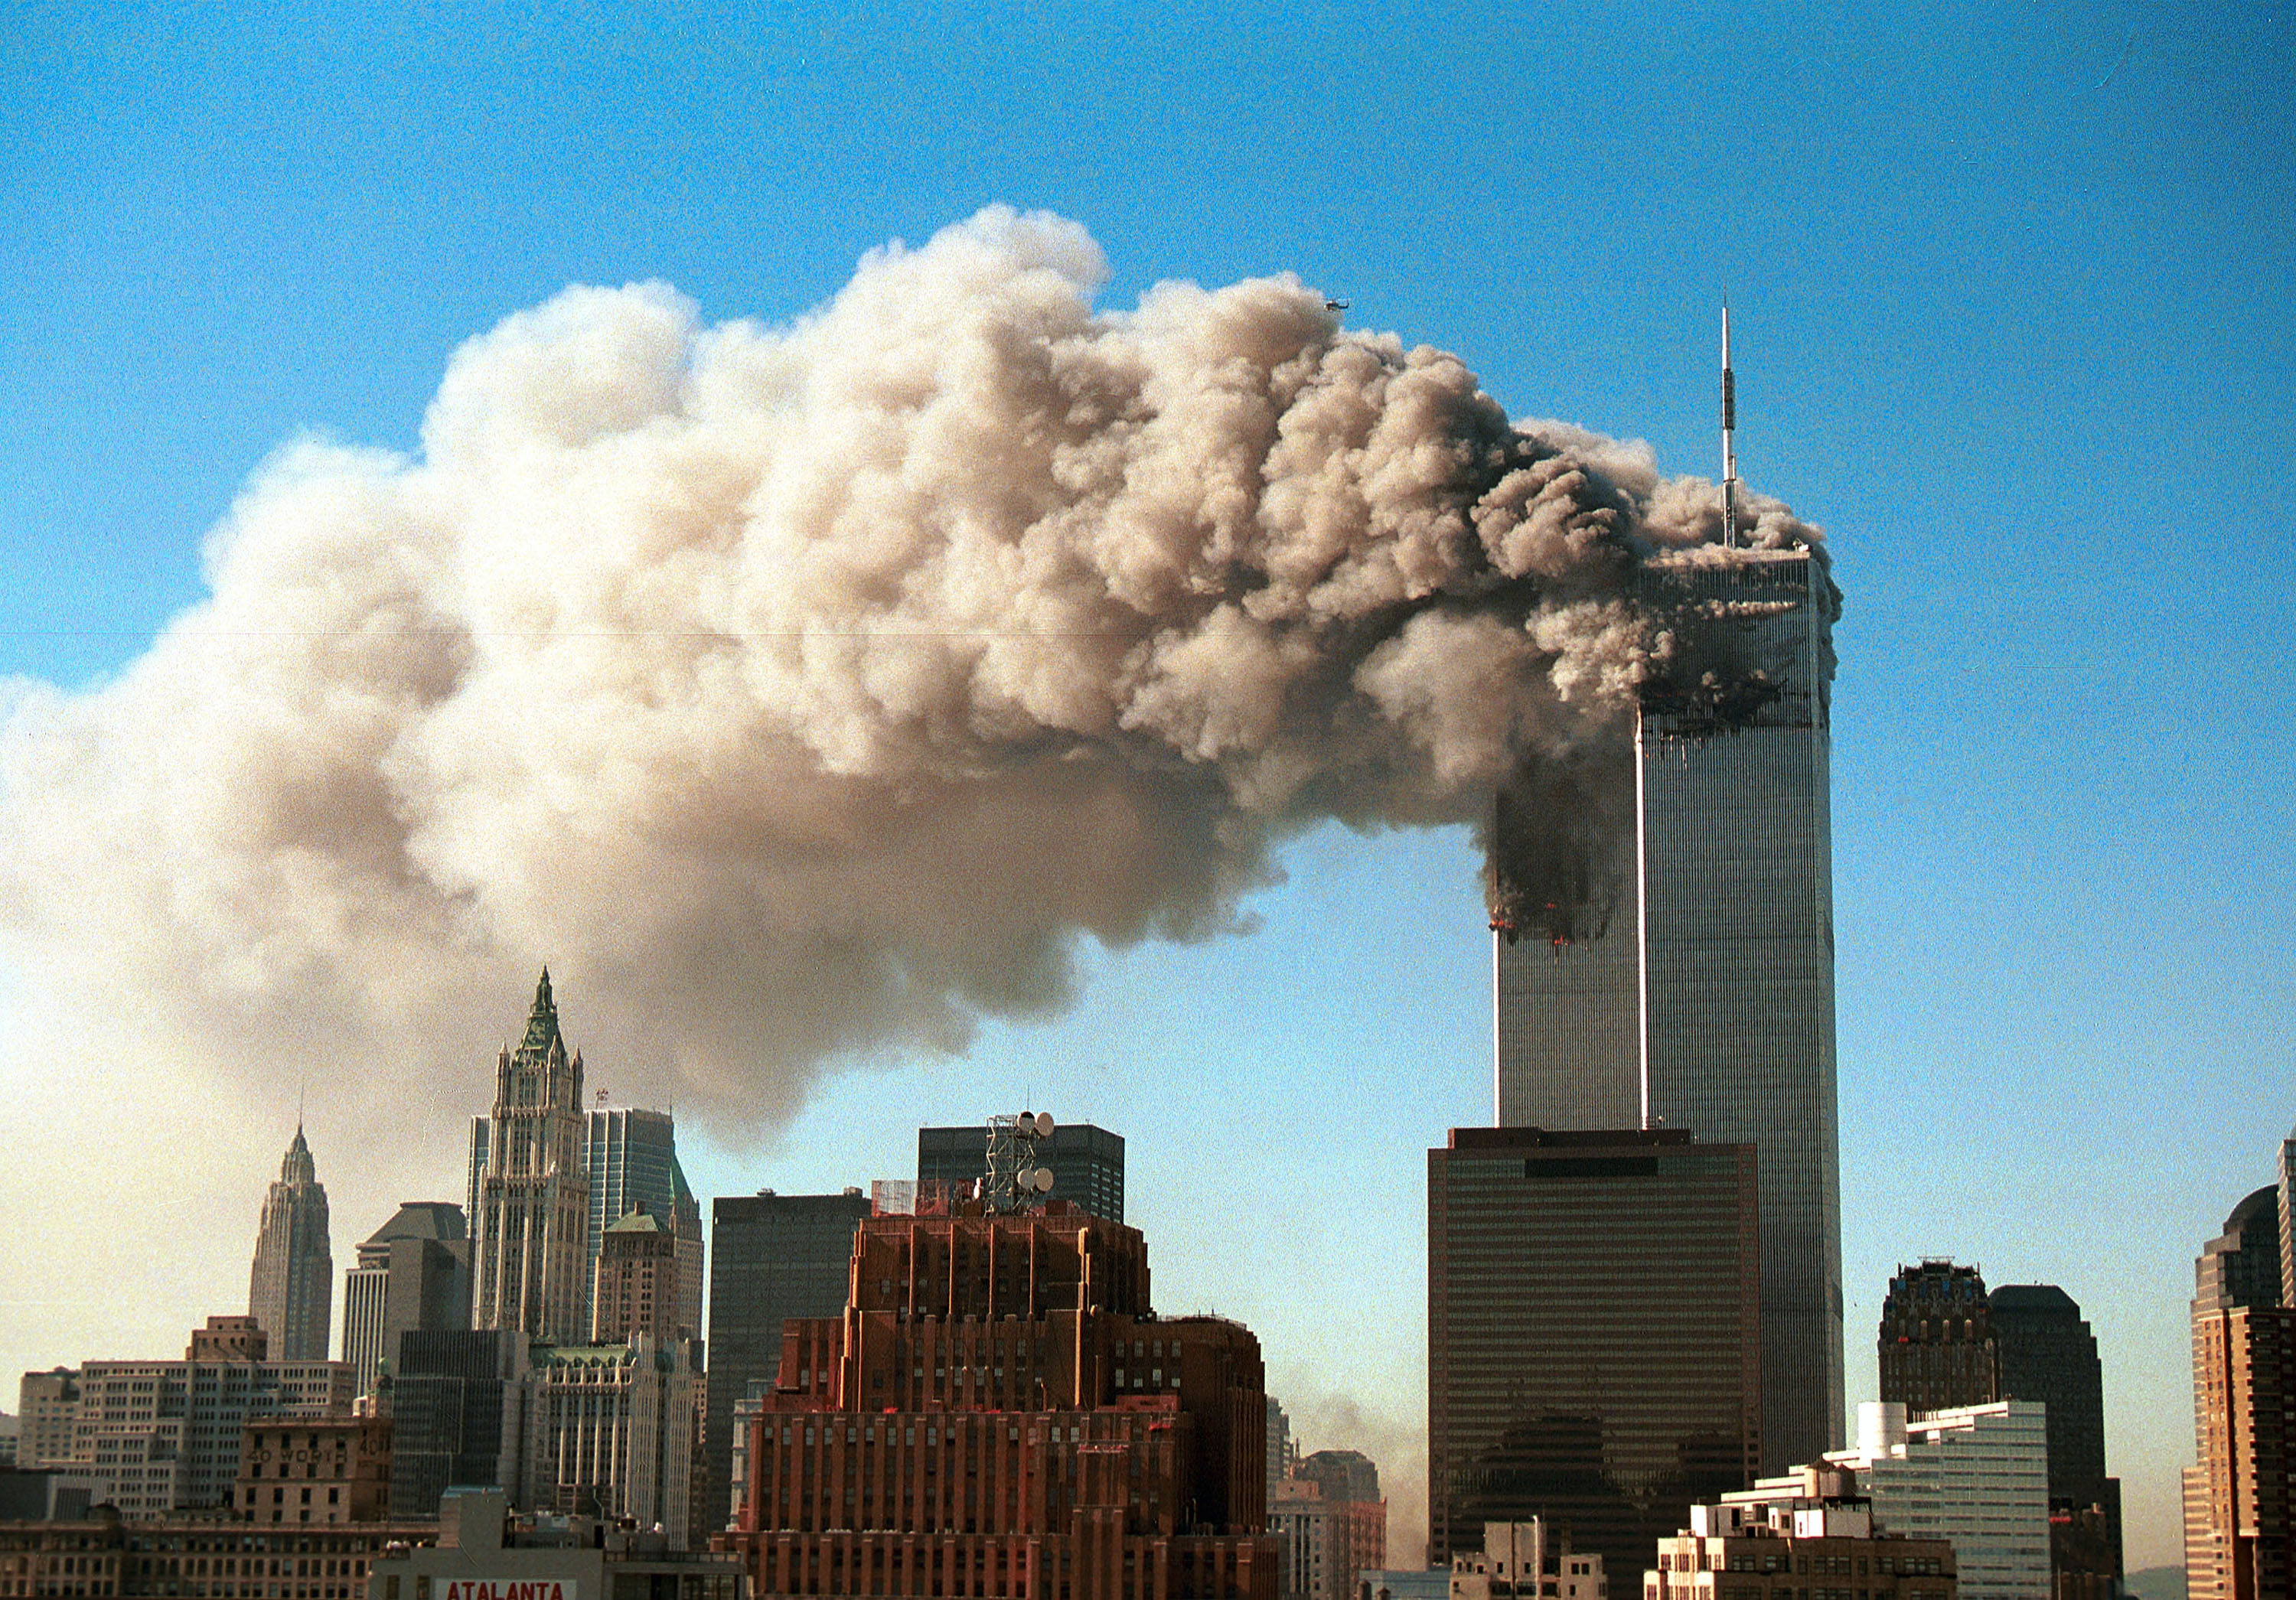 10 Things That Just Changed After The 9/11 Attacks